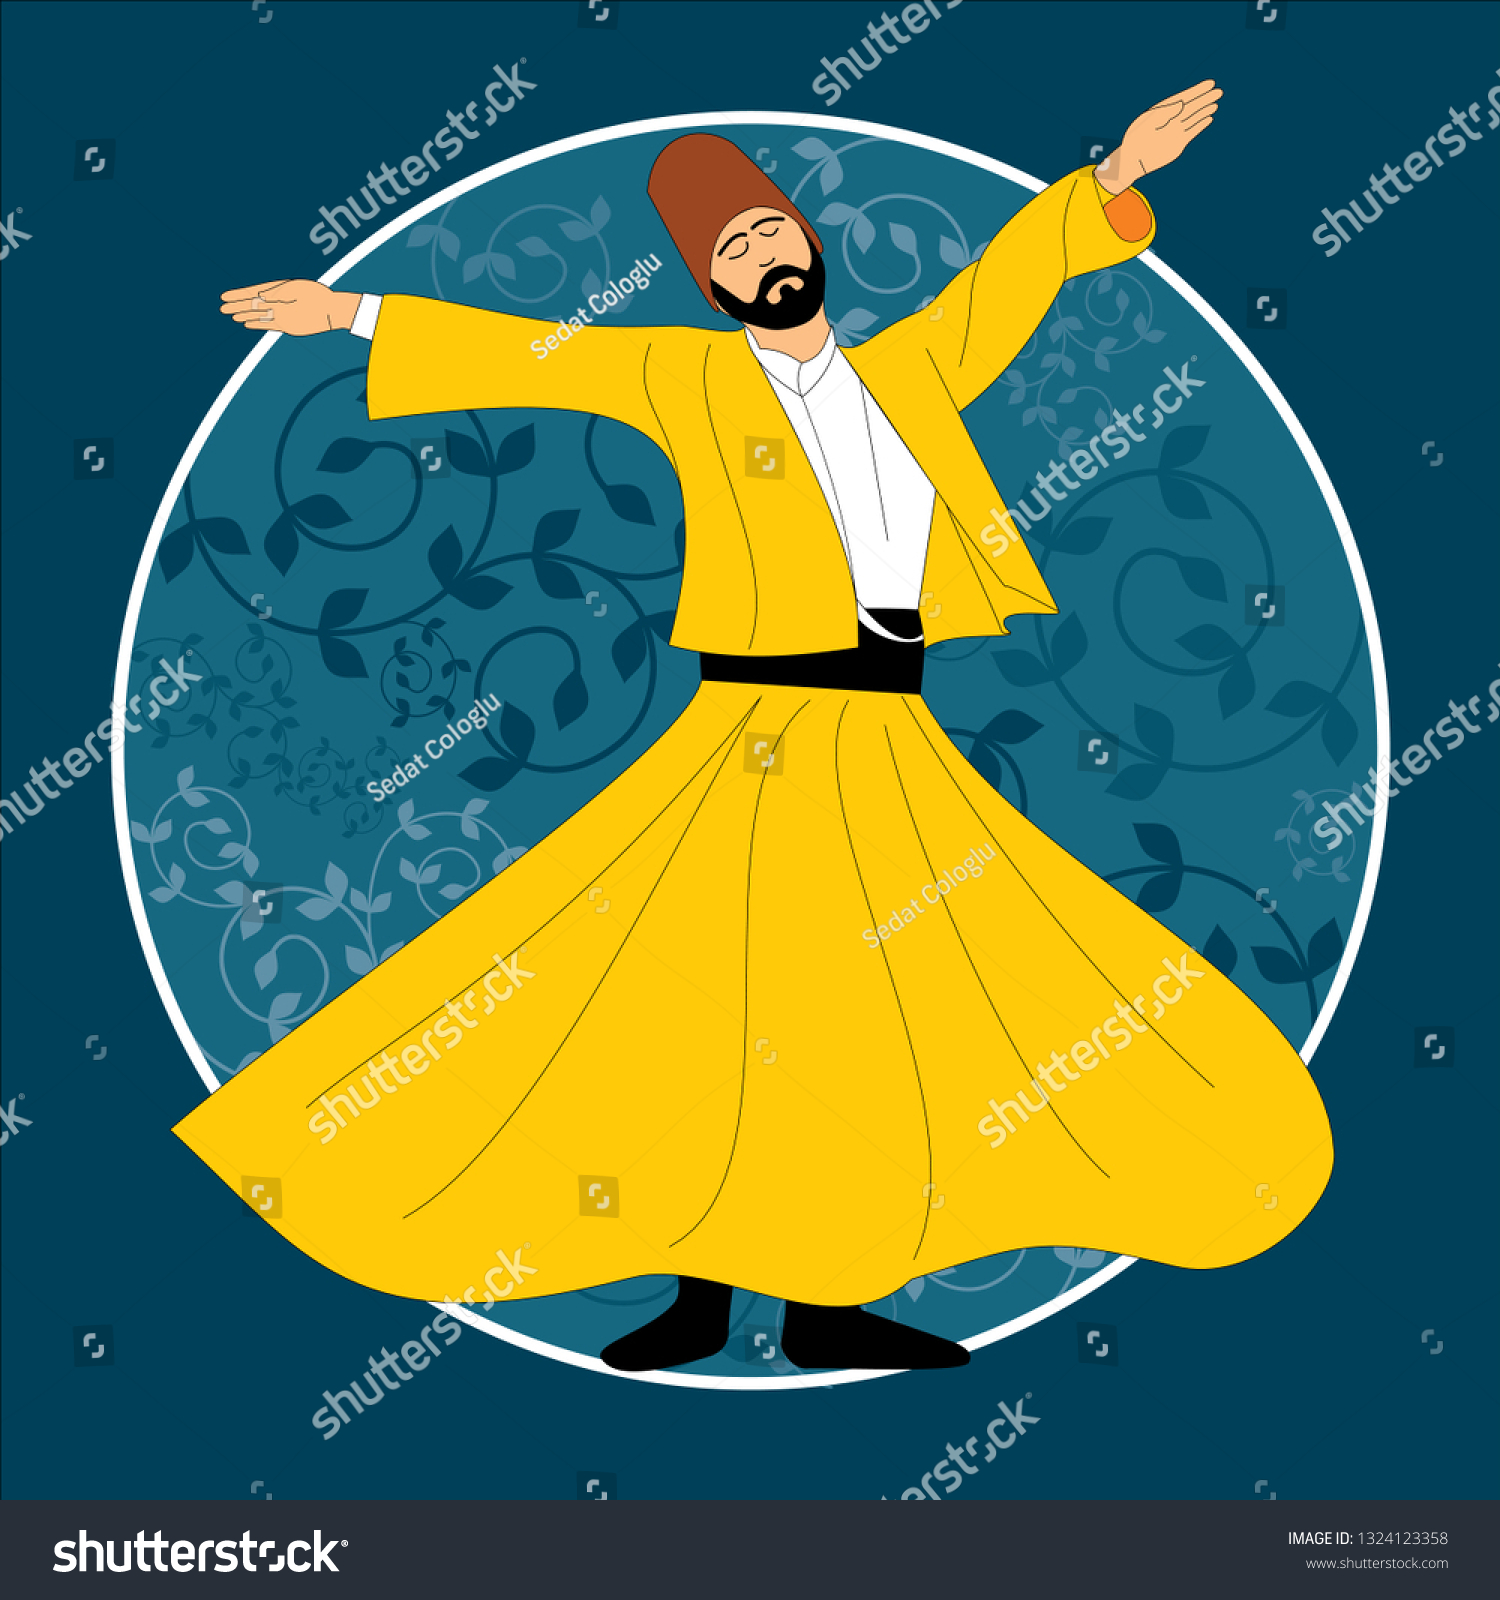 stock-vector-dervish-symbolic-study-of-mevlevi-mystical-dance-this-painting-represents-a-movement-of-this-1324123358